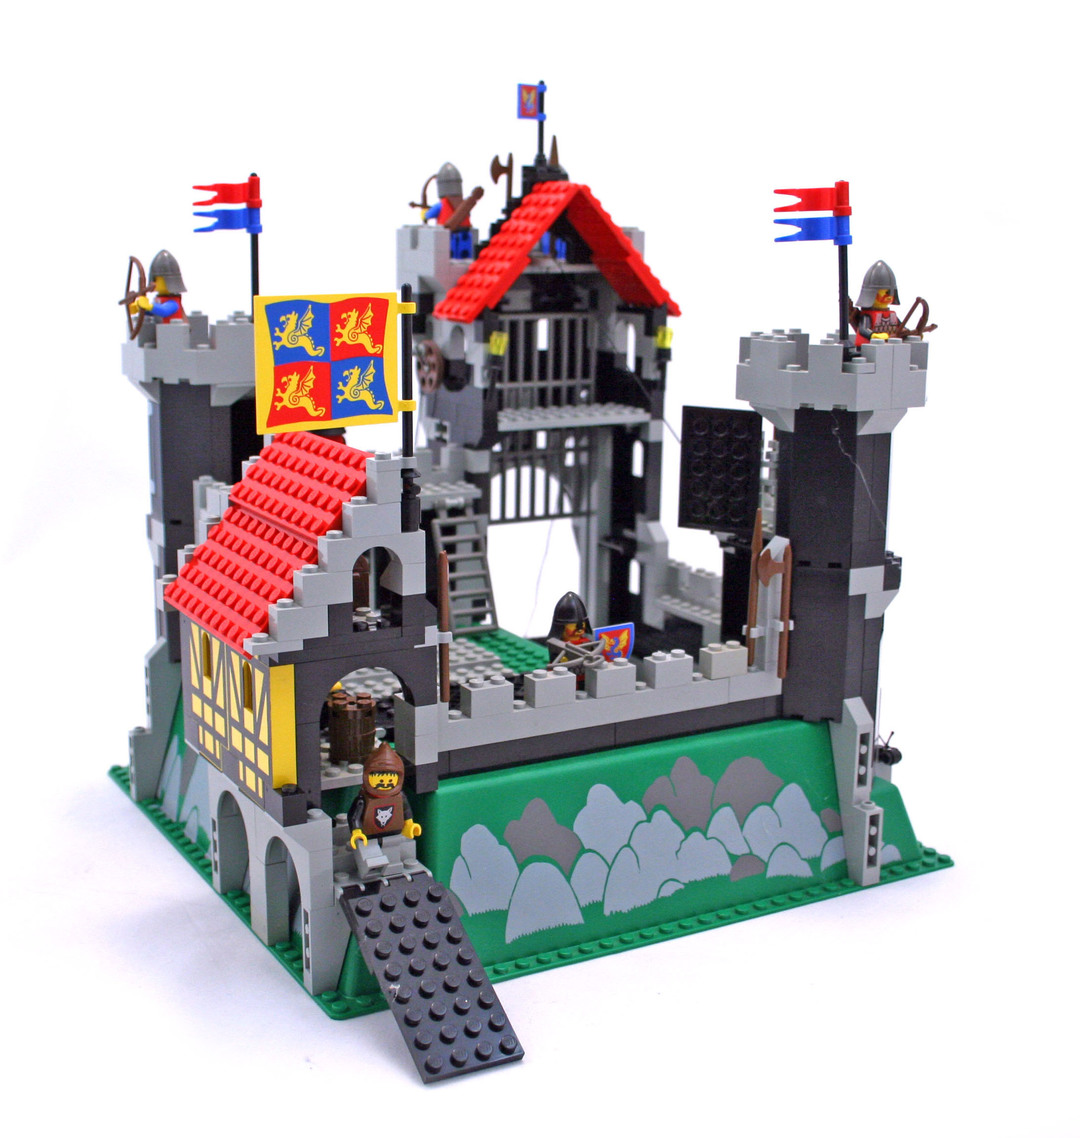 Asynchronous Development And The Gifted Child further Playmobil lion knights empire castle 4865 in addition Fairy Tale Castles together with Edinburgh castle moreover Black Knights Castle Lego Set 6086 1. on castle portcullis